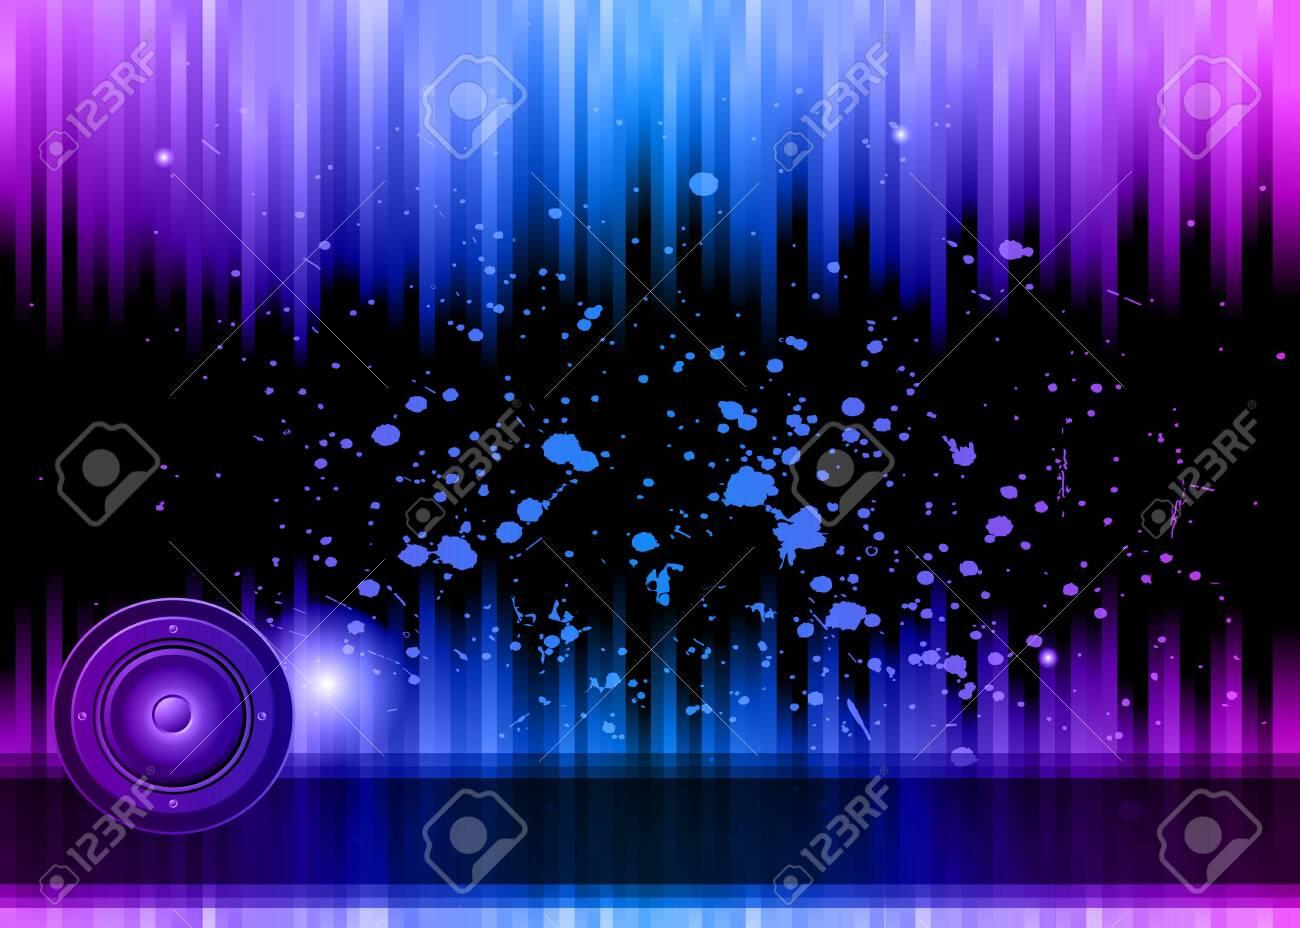 Disco club flyer with colorful elements. Ideal for poster and music background. - 123695072